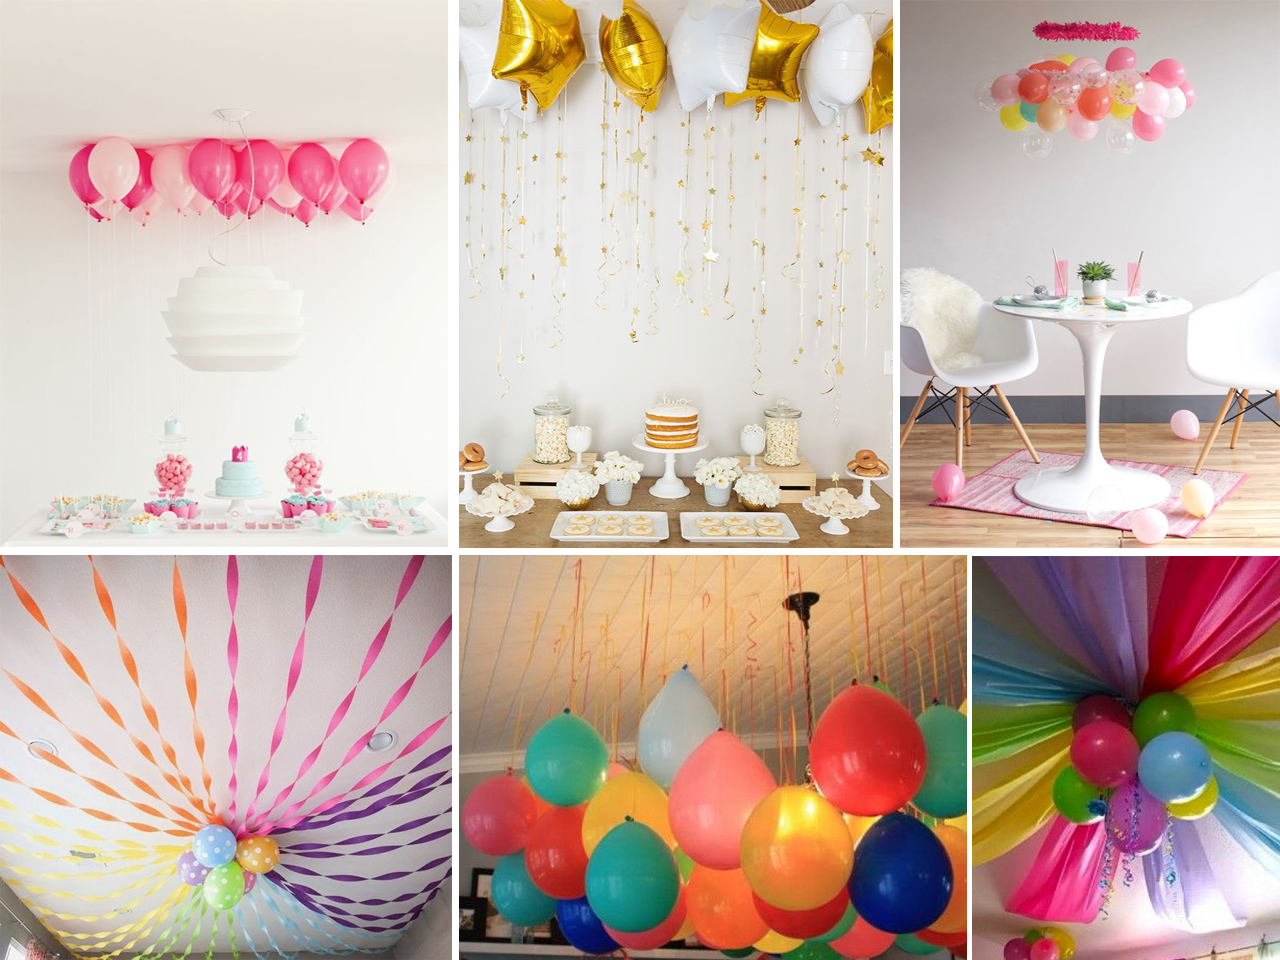 Descubre c mo decorar con globos con estas fant sticas ideas for Decoracion y ideas